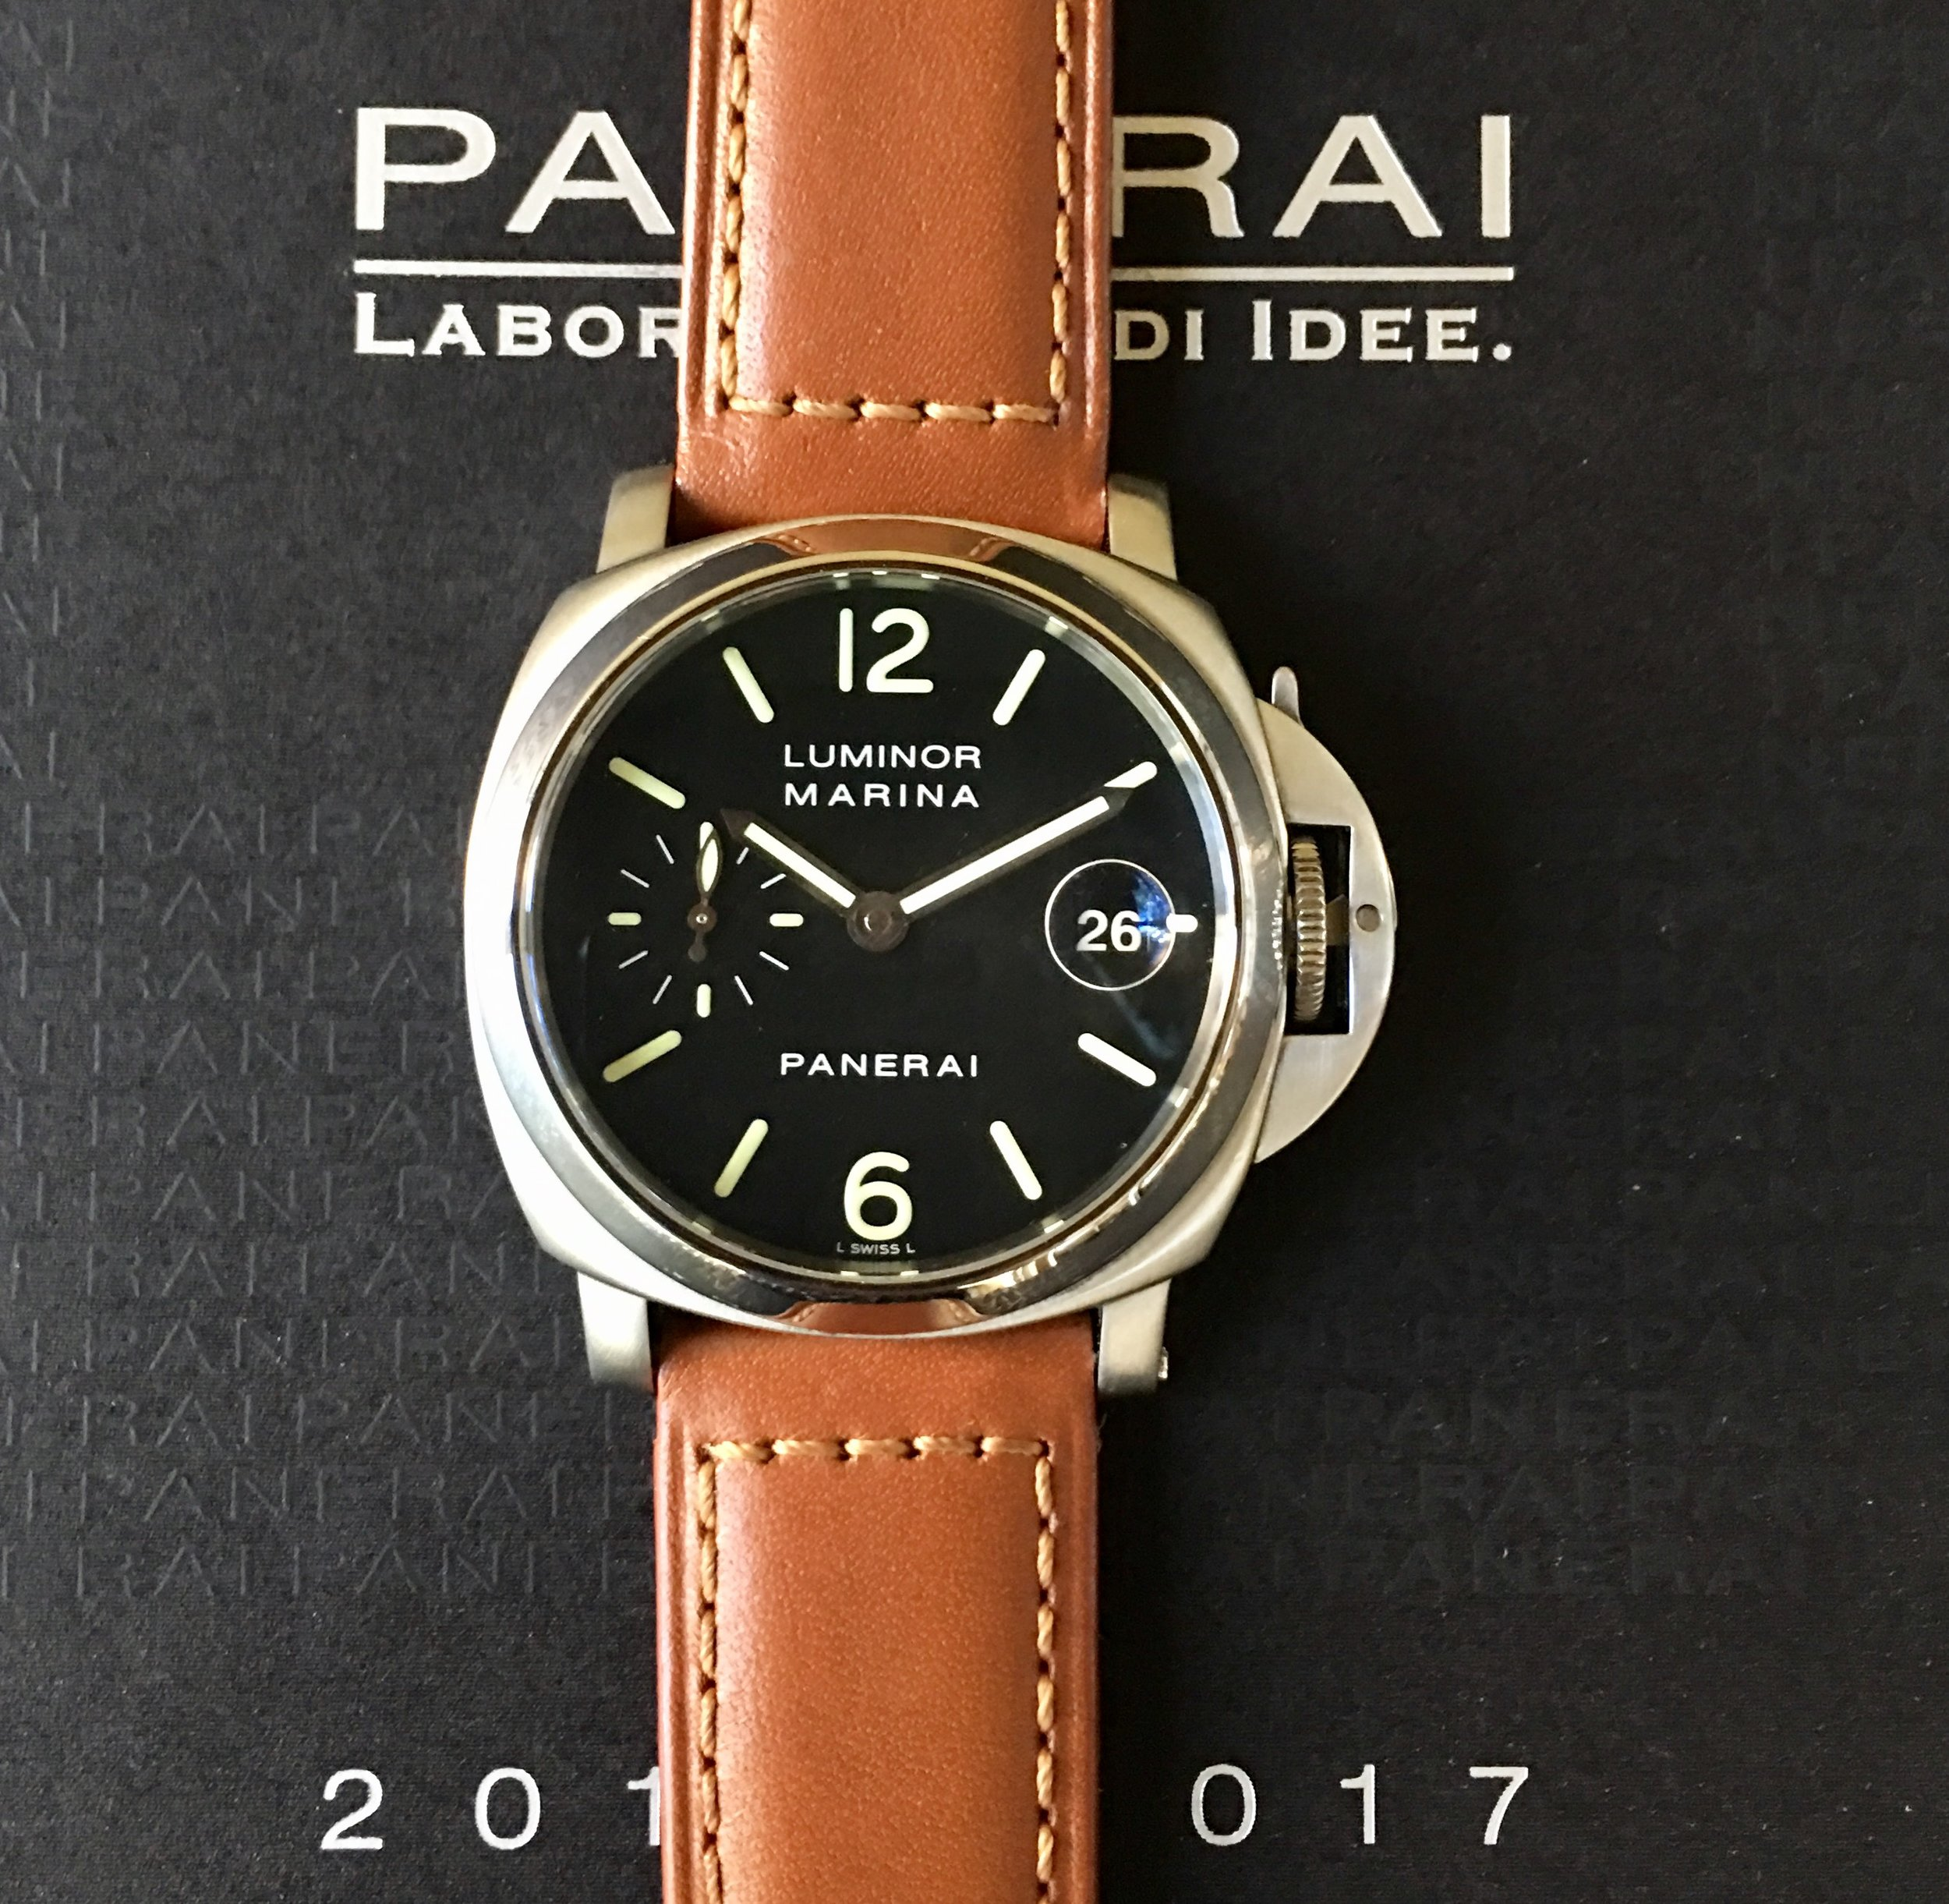 Watch Luminor Marina Panerai  .Tampa Jewelry Store Watch Repair